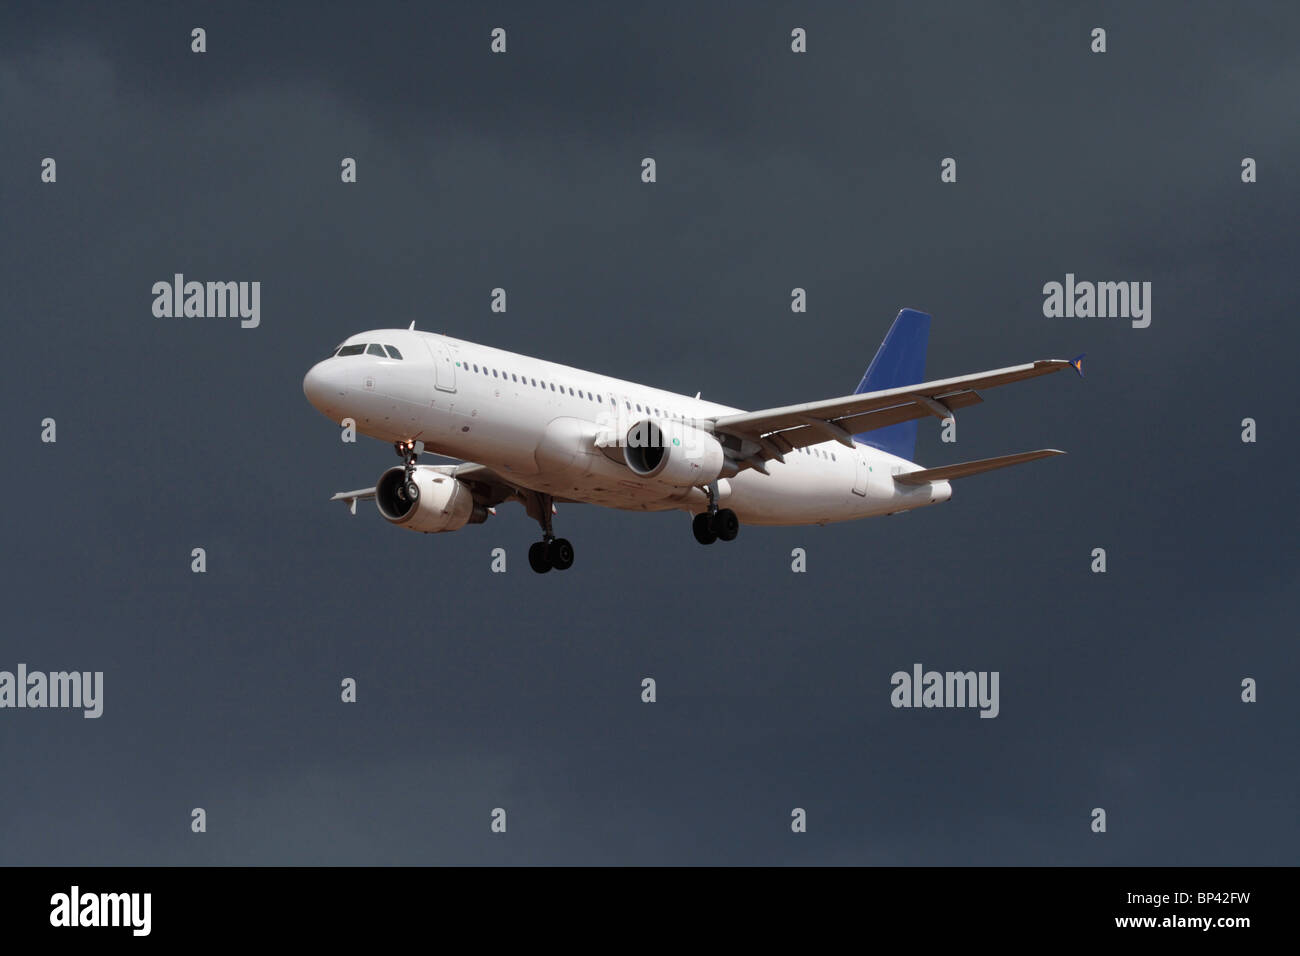 Airbus A320 passenger jet plane flying on approach against a dark cloudy sky. No livery and proprietary details - Stock Image